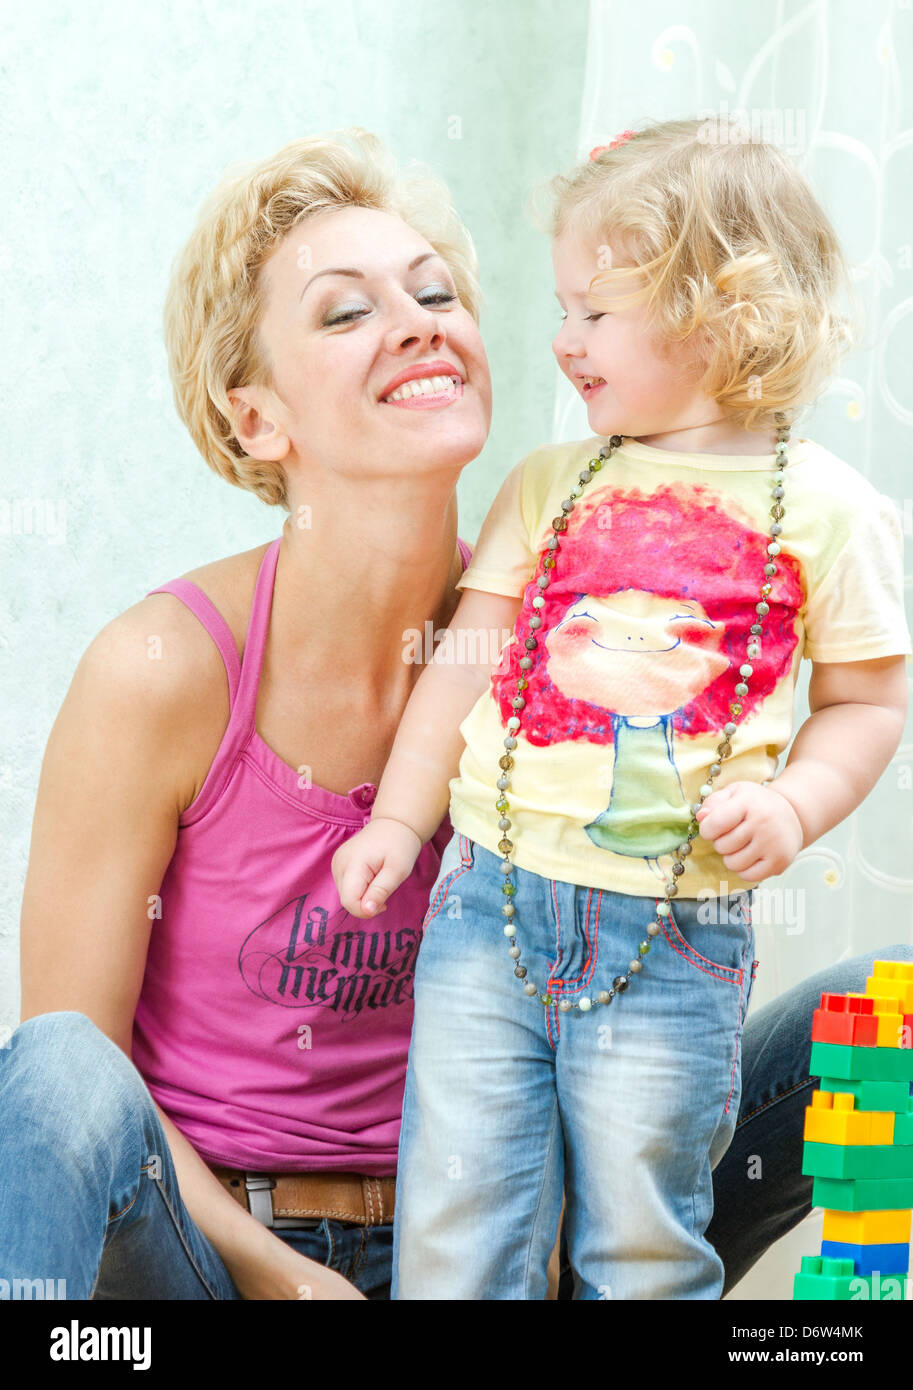 portrait of happy mother and daughter - Stock Image